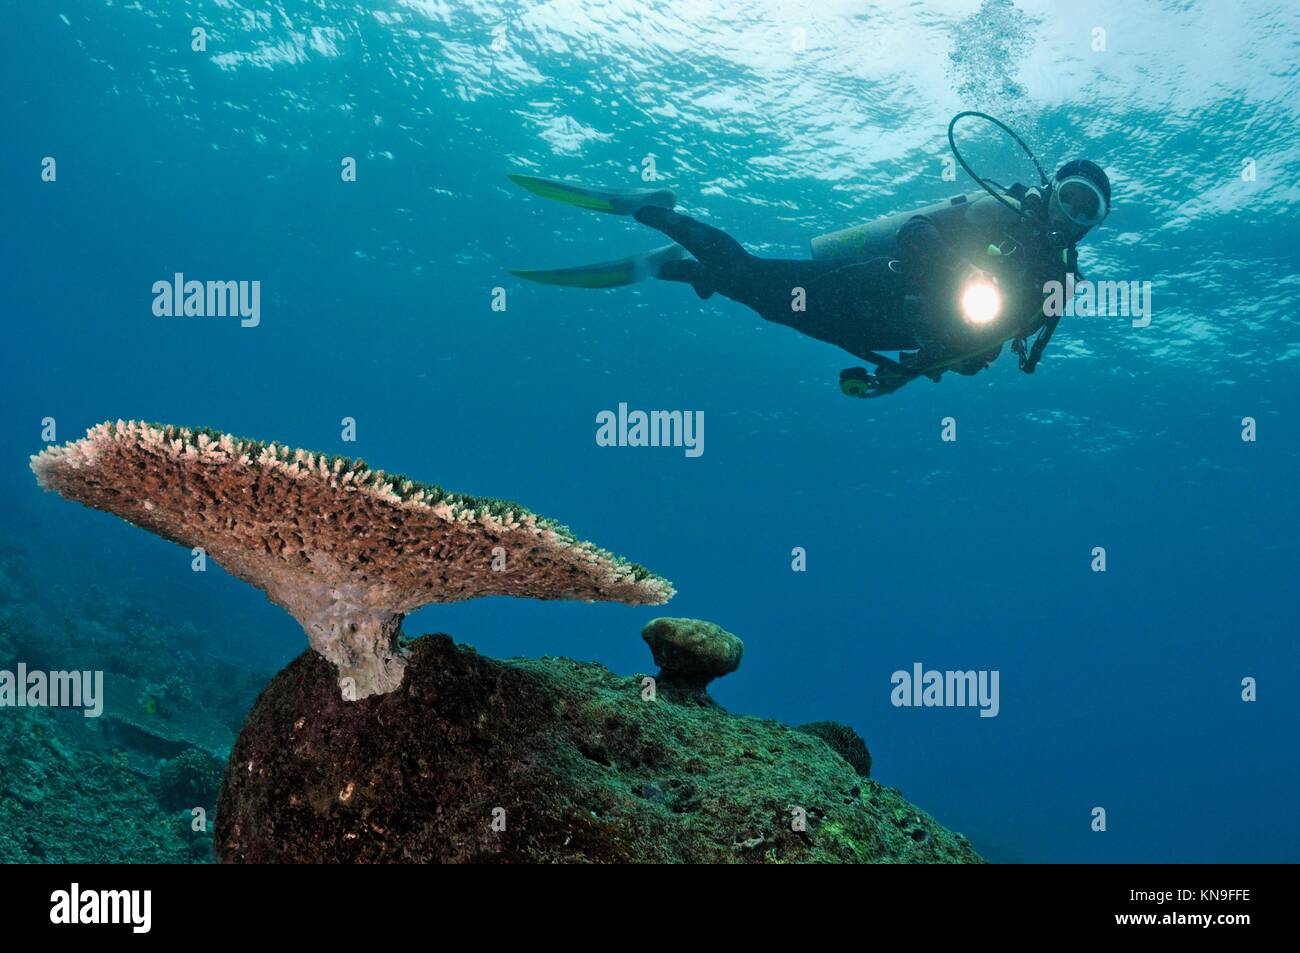 Scuba Diver shining torch on Table Coral (Acropora), Island of Borneo, Sipadan Island, Malaysia. - Stock Image